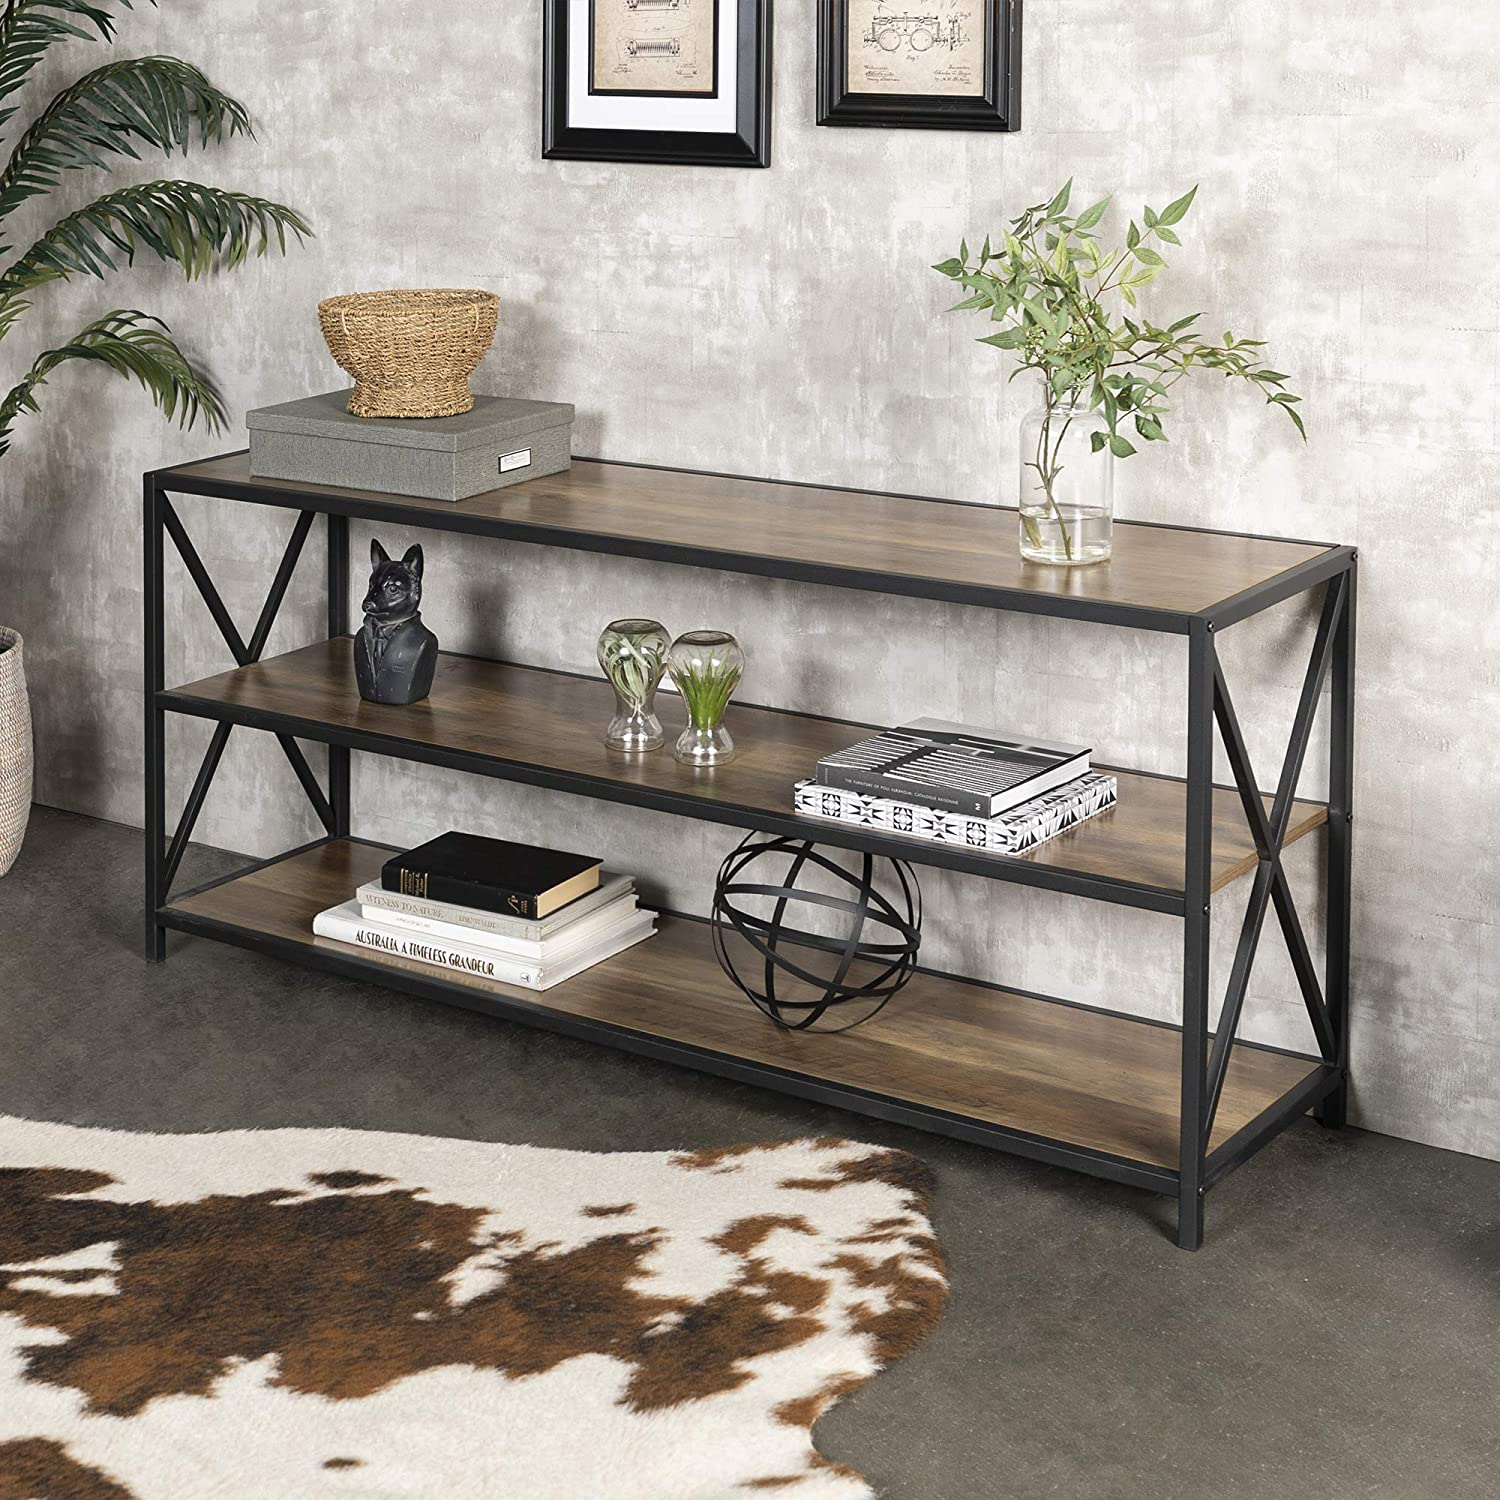 Walker Edison Furniture Company 2 Shelf Industrial Wood Metal Bookcase Bookshelf Storage 60 Inch Brown Reclaimed Barnwood Walmart Com Walmart Com